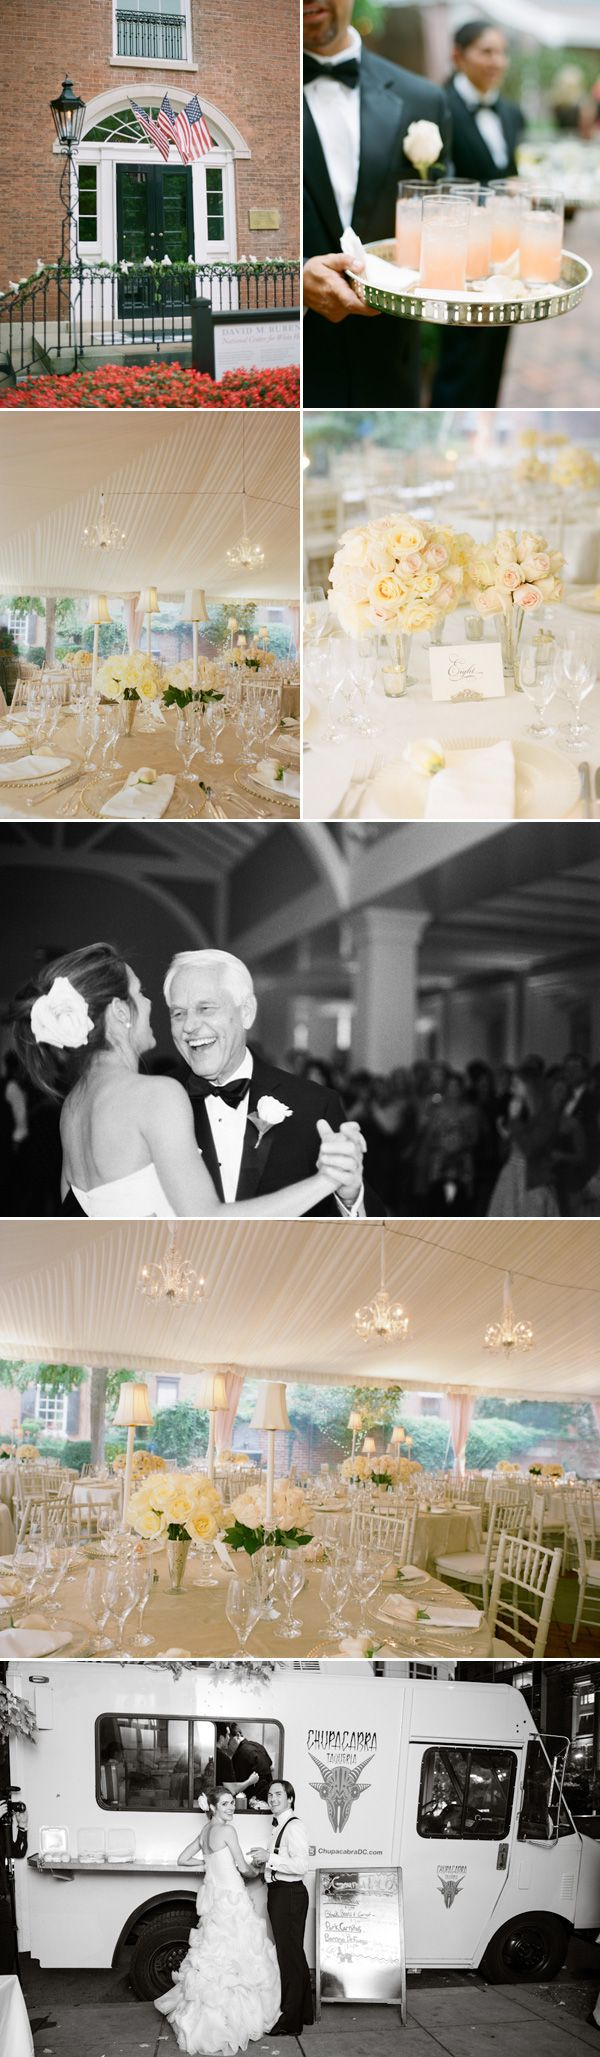 Beautiful DC wedding at Decatur House. Photos by Abby Jiu.